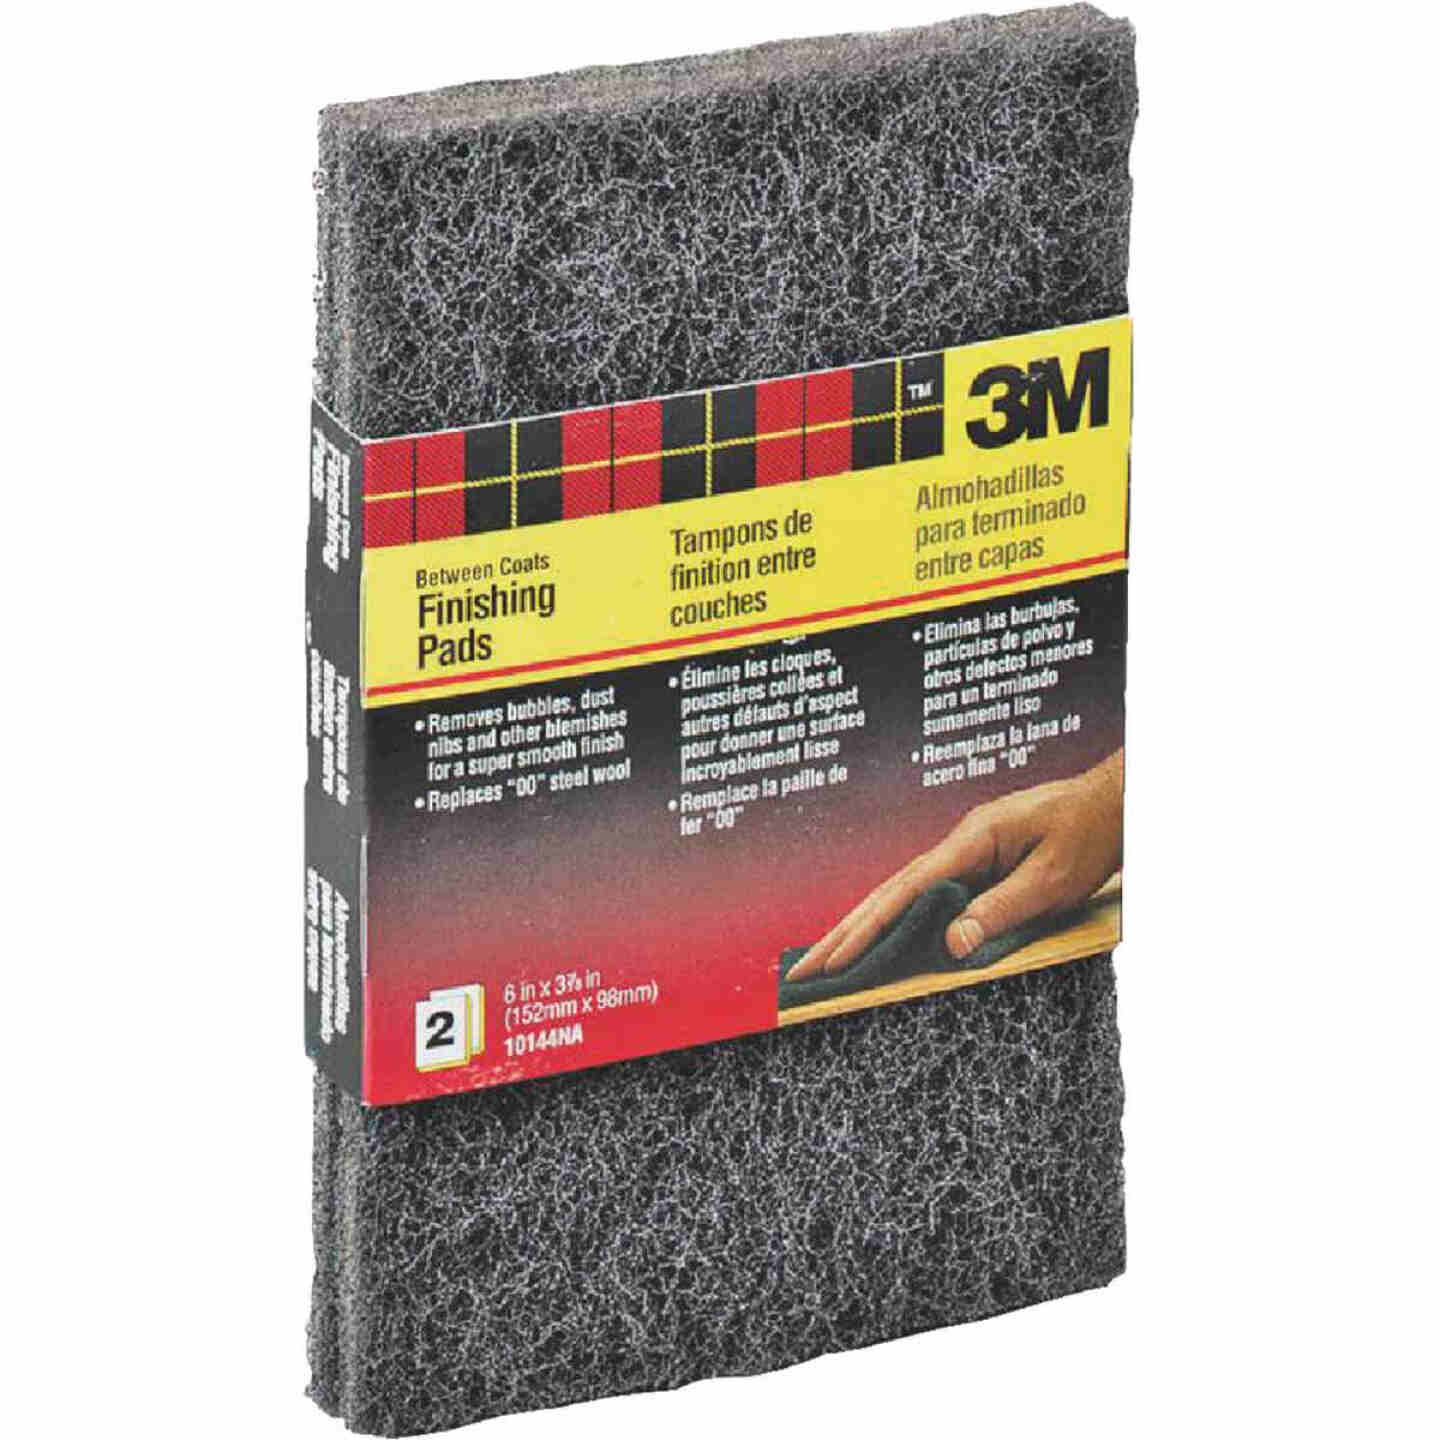 3M 3-7/8 In. x 6 In. Finishing Pad (2-Pack) Image 1